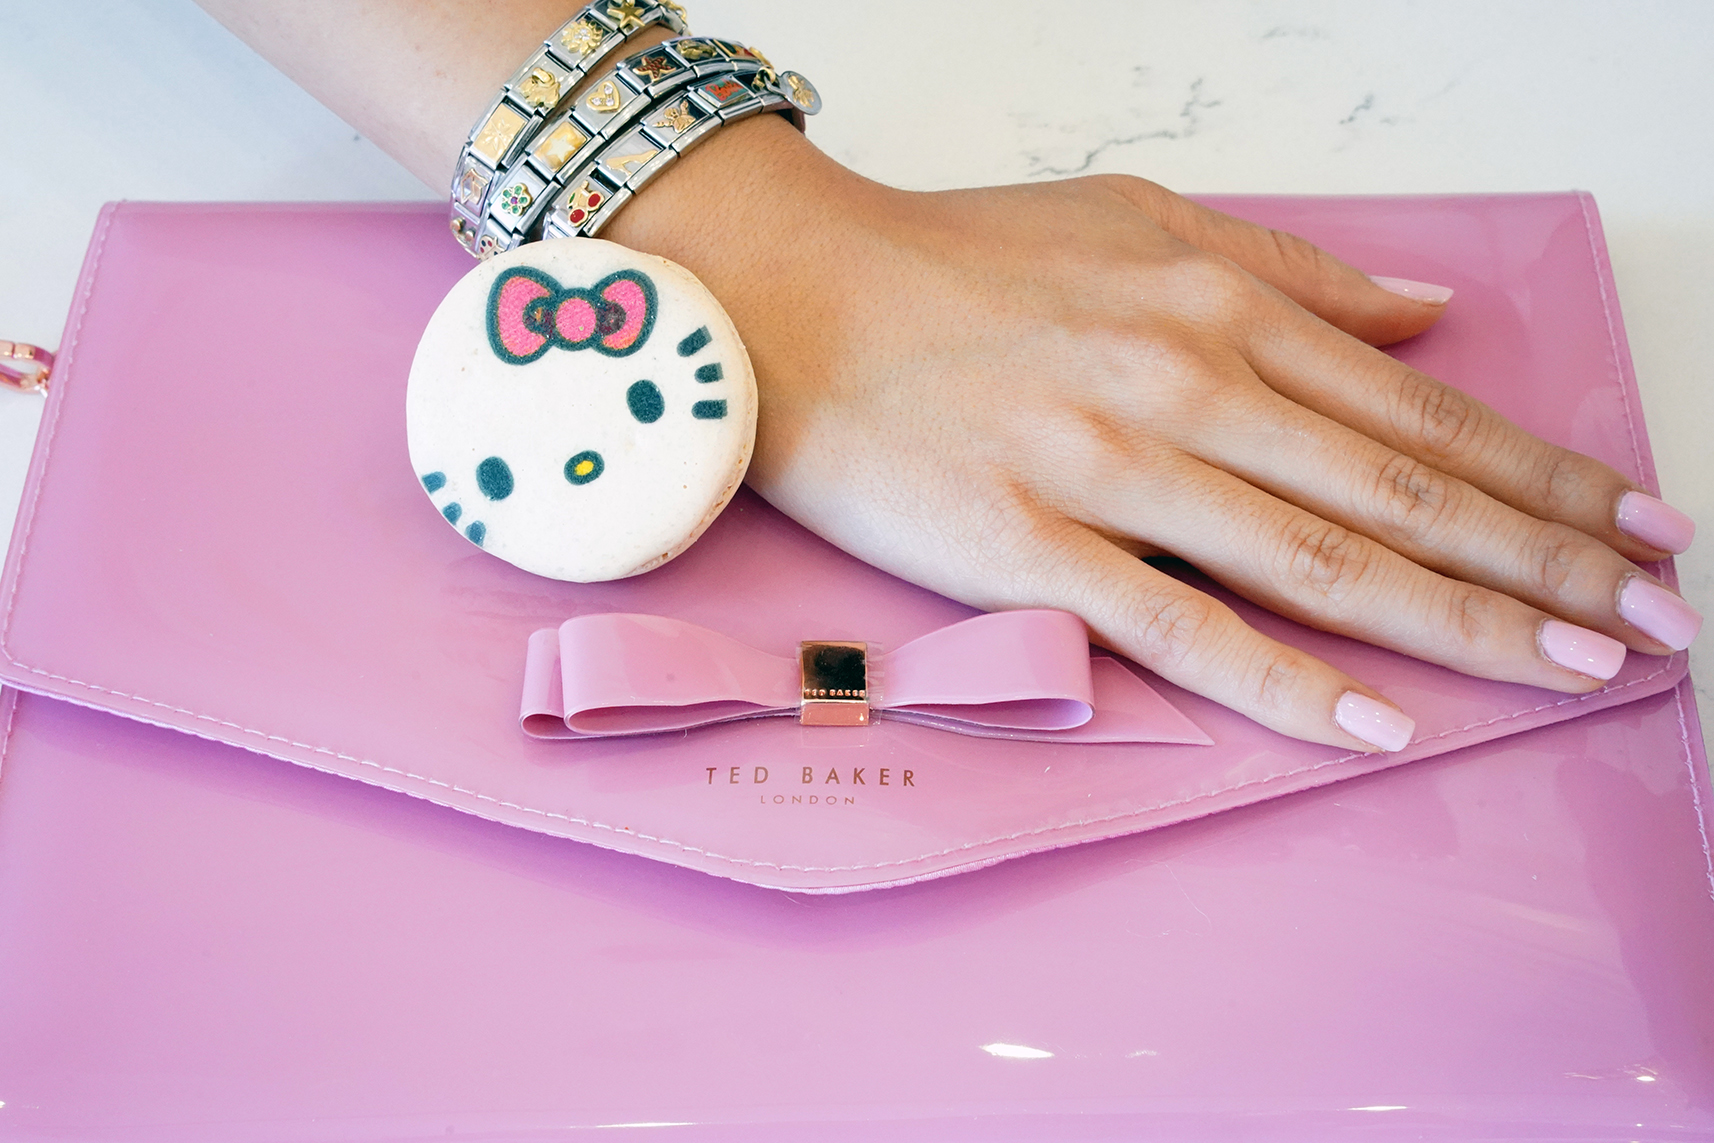 NCLA Pink Pastel Dreams Barbie Nail Polish and Ted Baker Pink Bow Envelope Cersei Clutch with Nomination Charm Bracelets